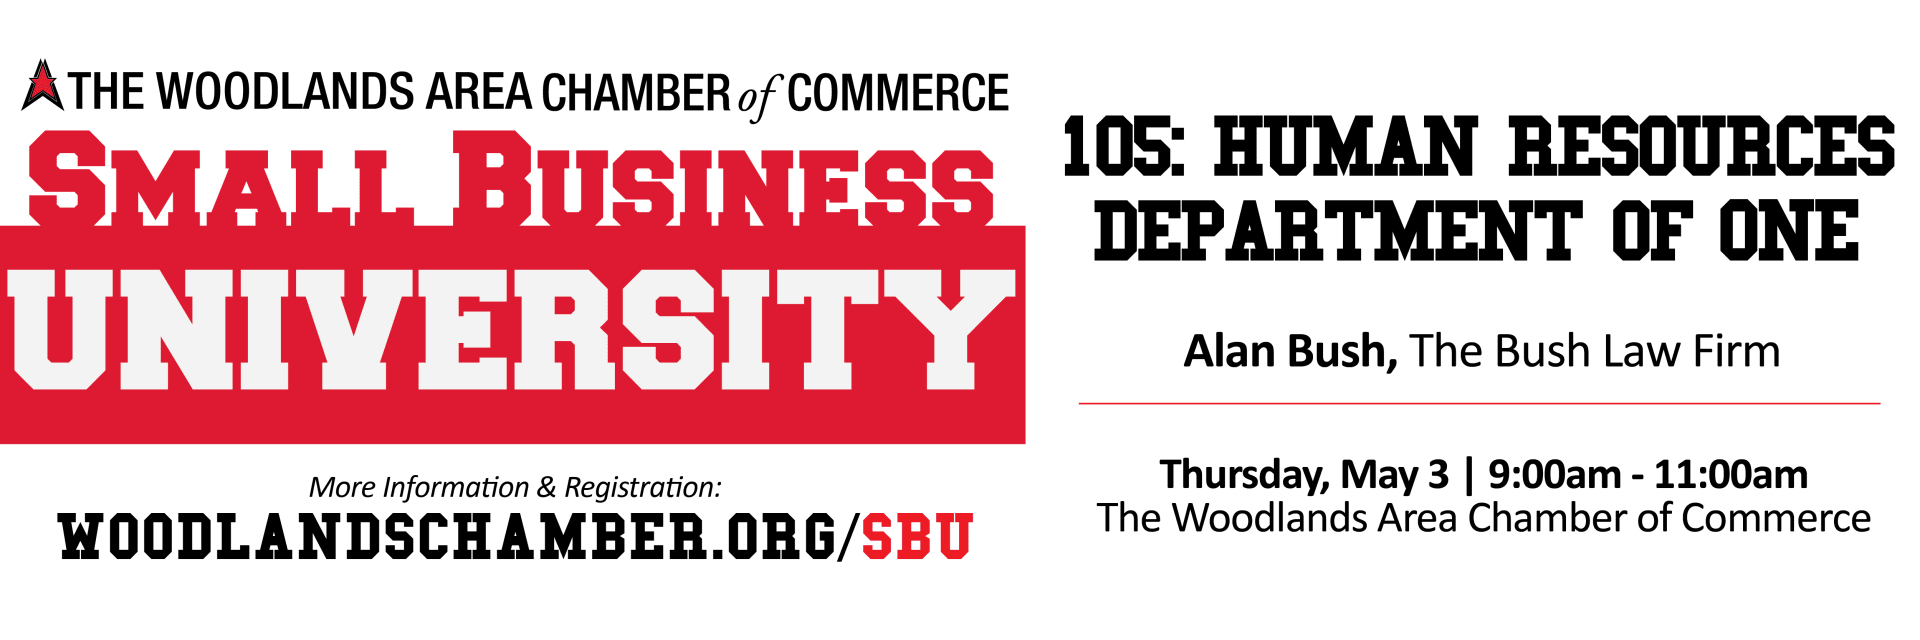 Small-Business-University-Graphics-May-3.-2018-w1920.png